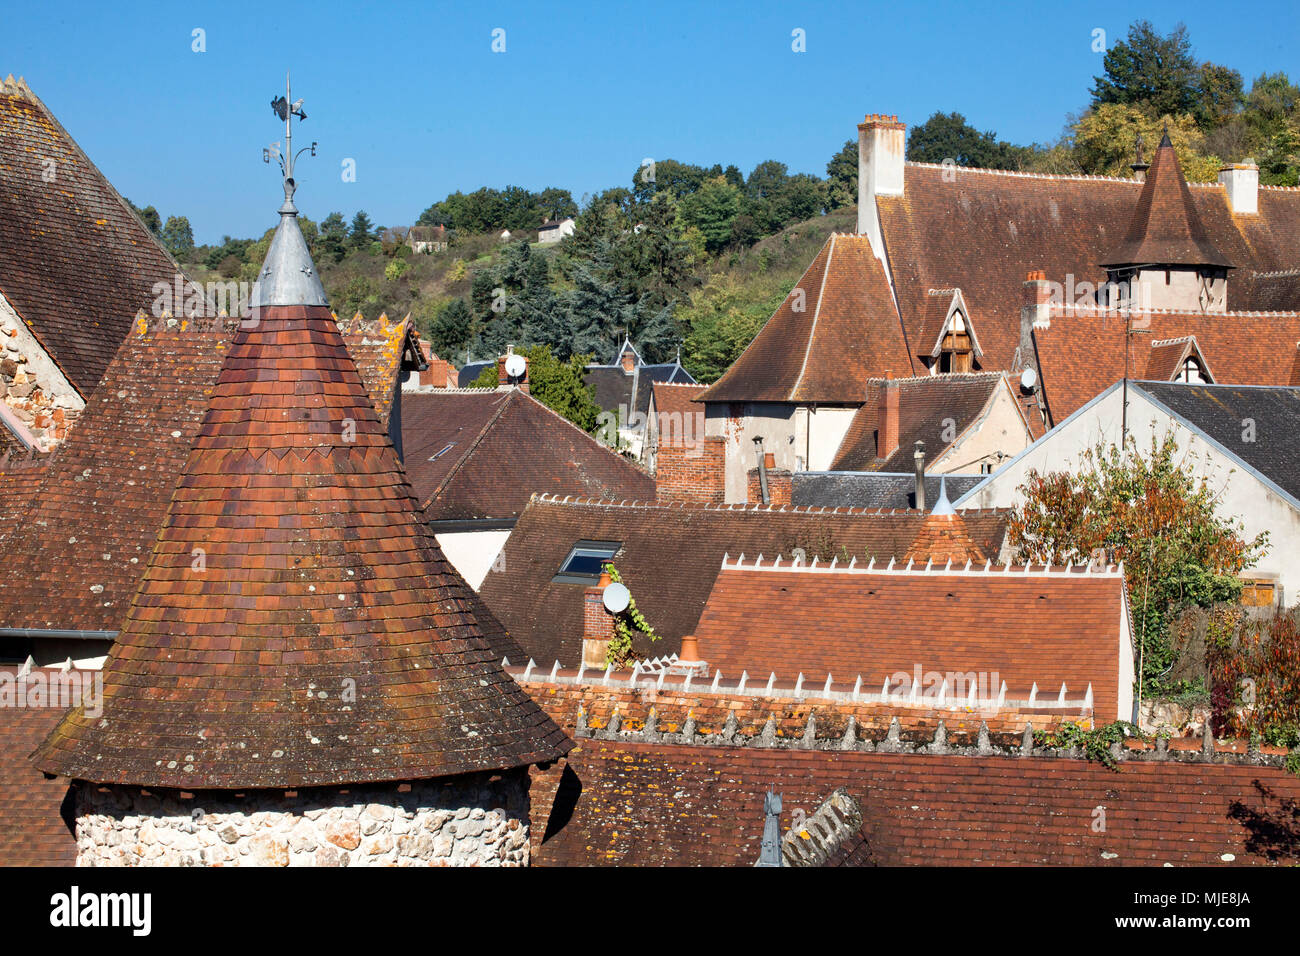 Hérisson, French municipality, tiled roofs - Stock Image